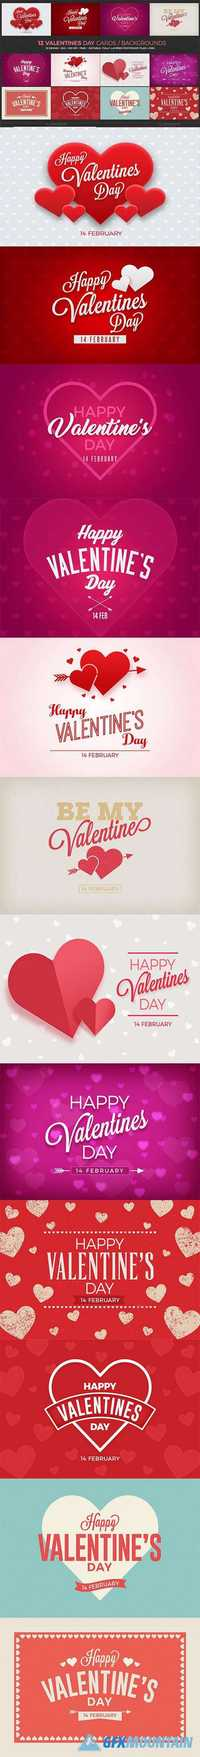 12 Valentines Day Cards/Backgrounds  1140821